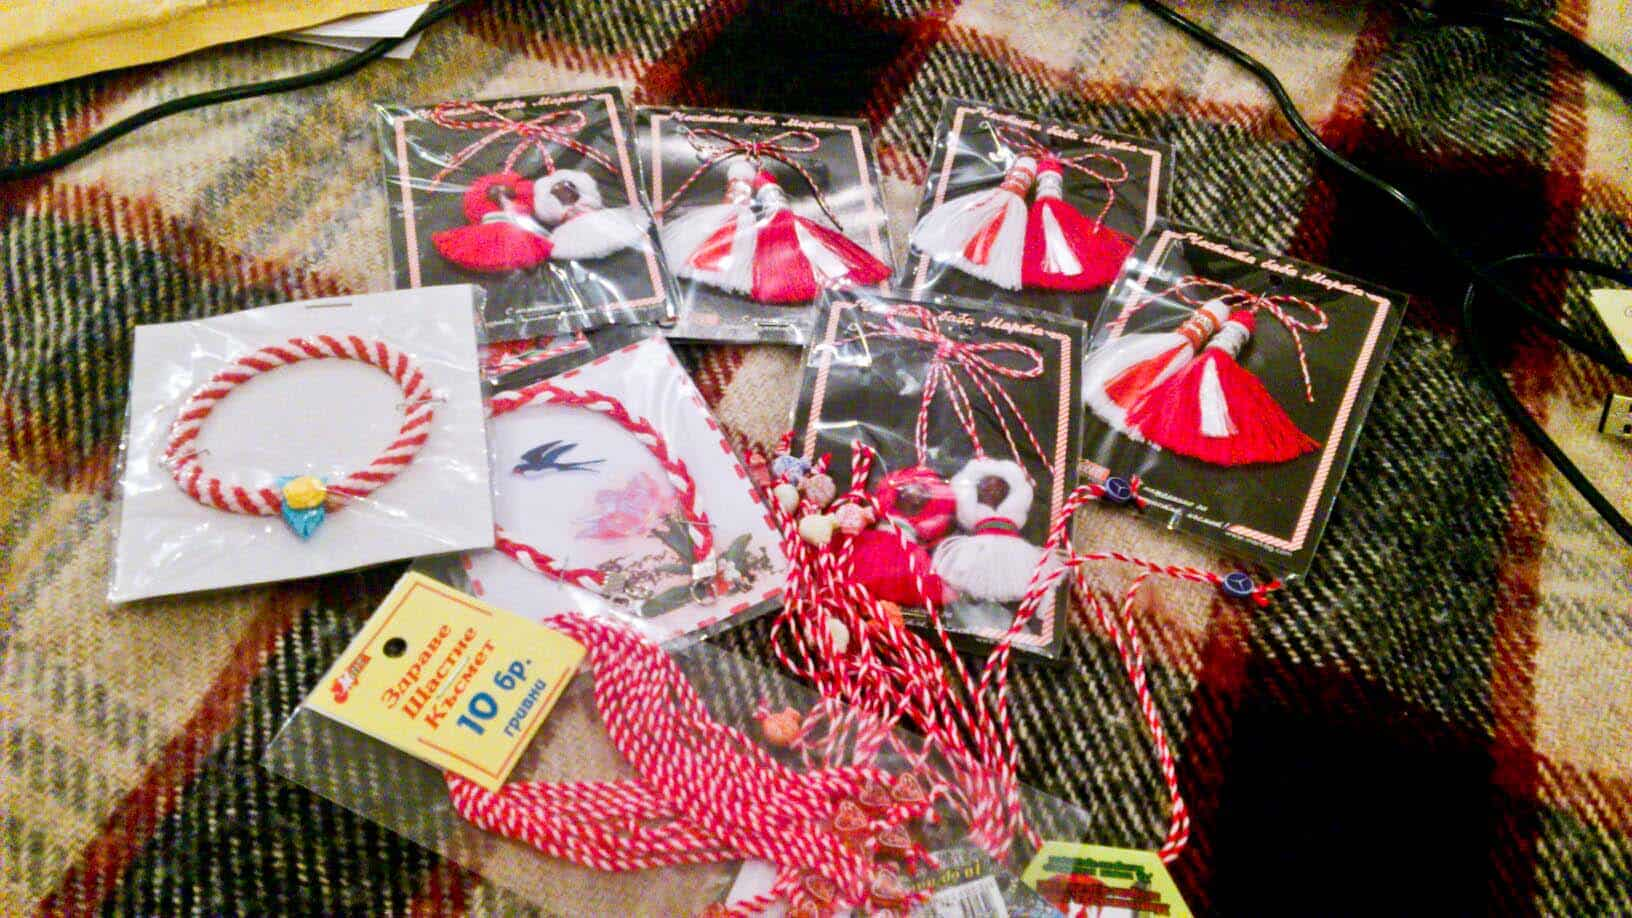 Baba Marta Martenitsa care package